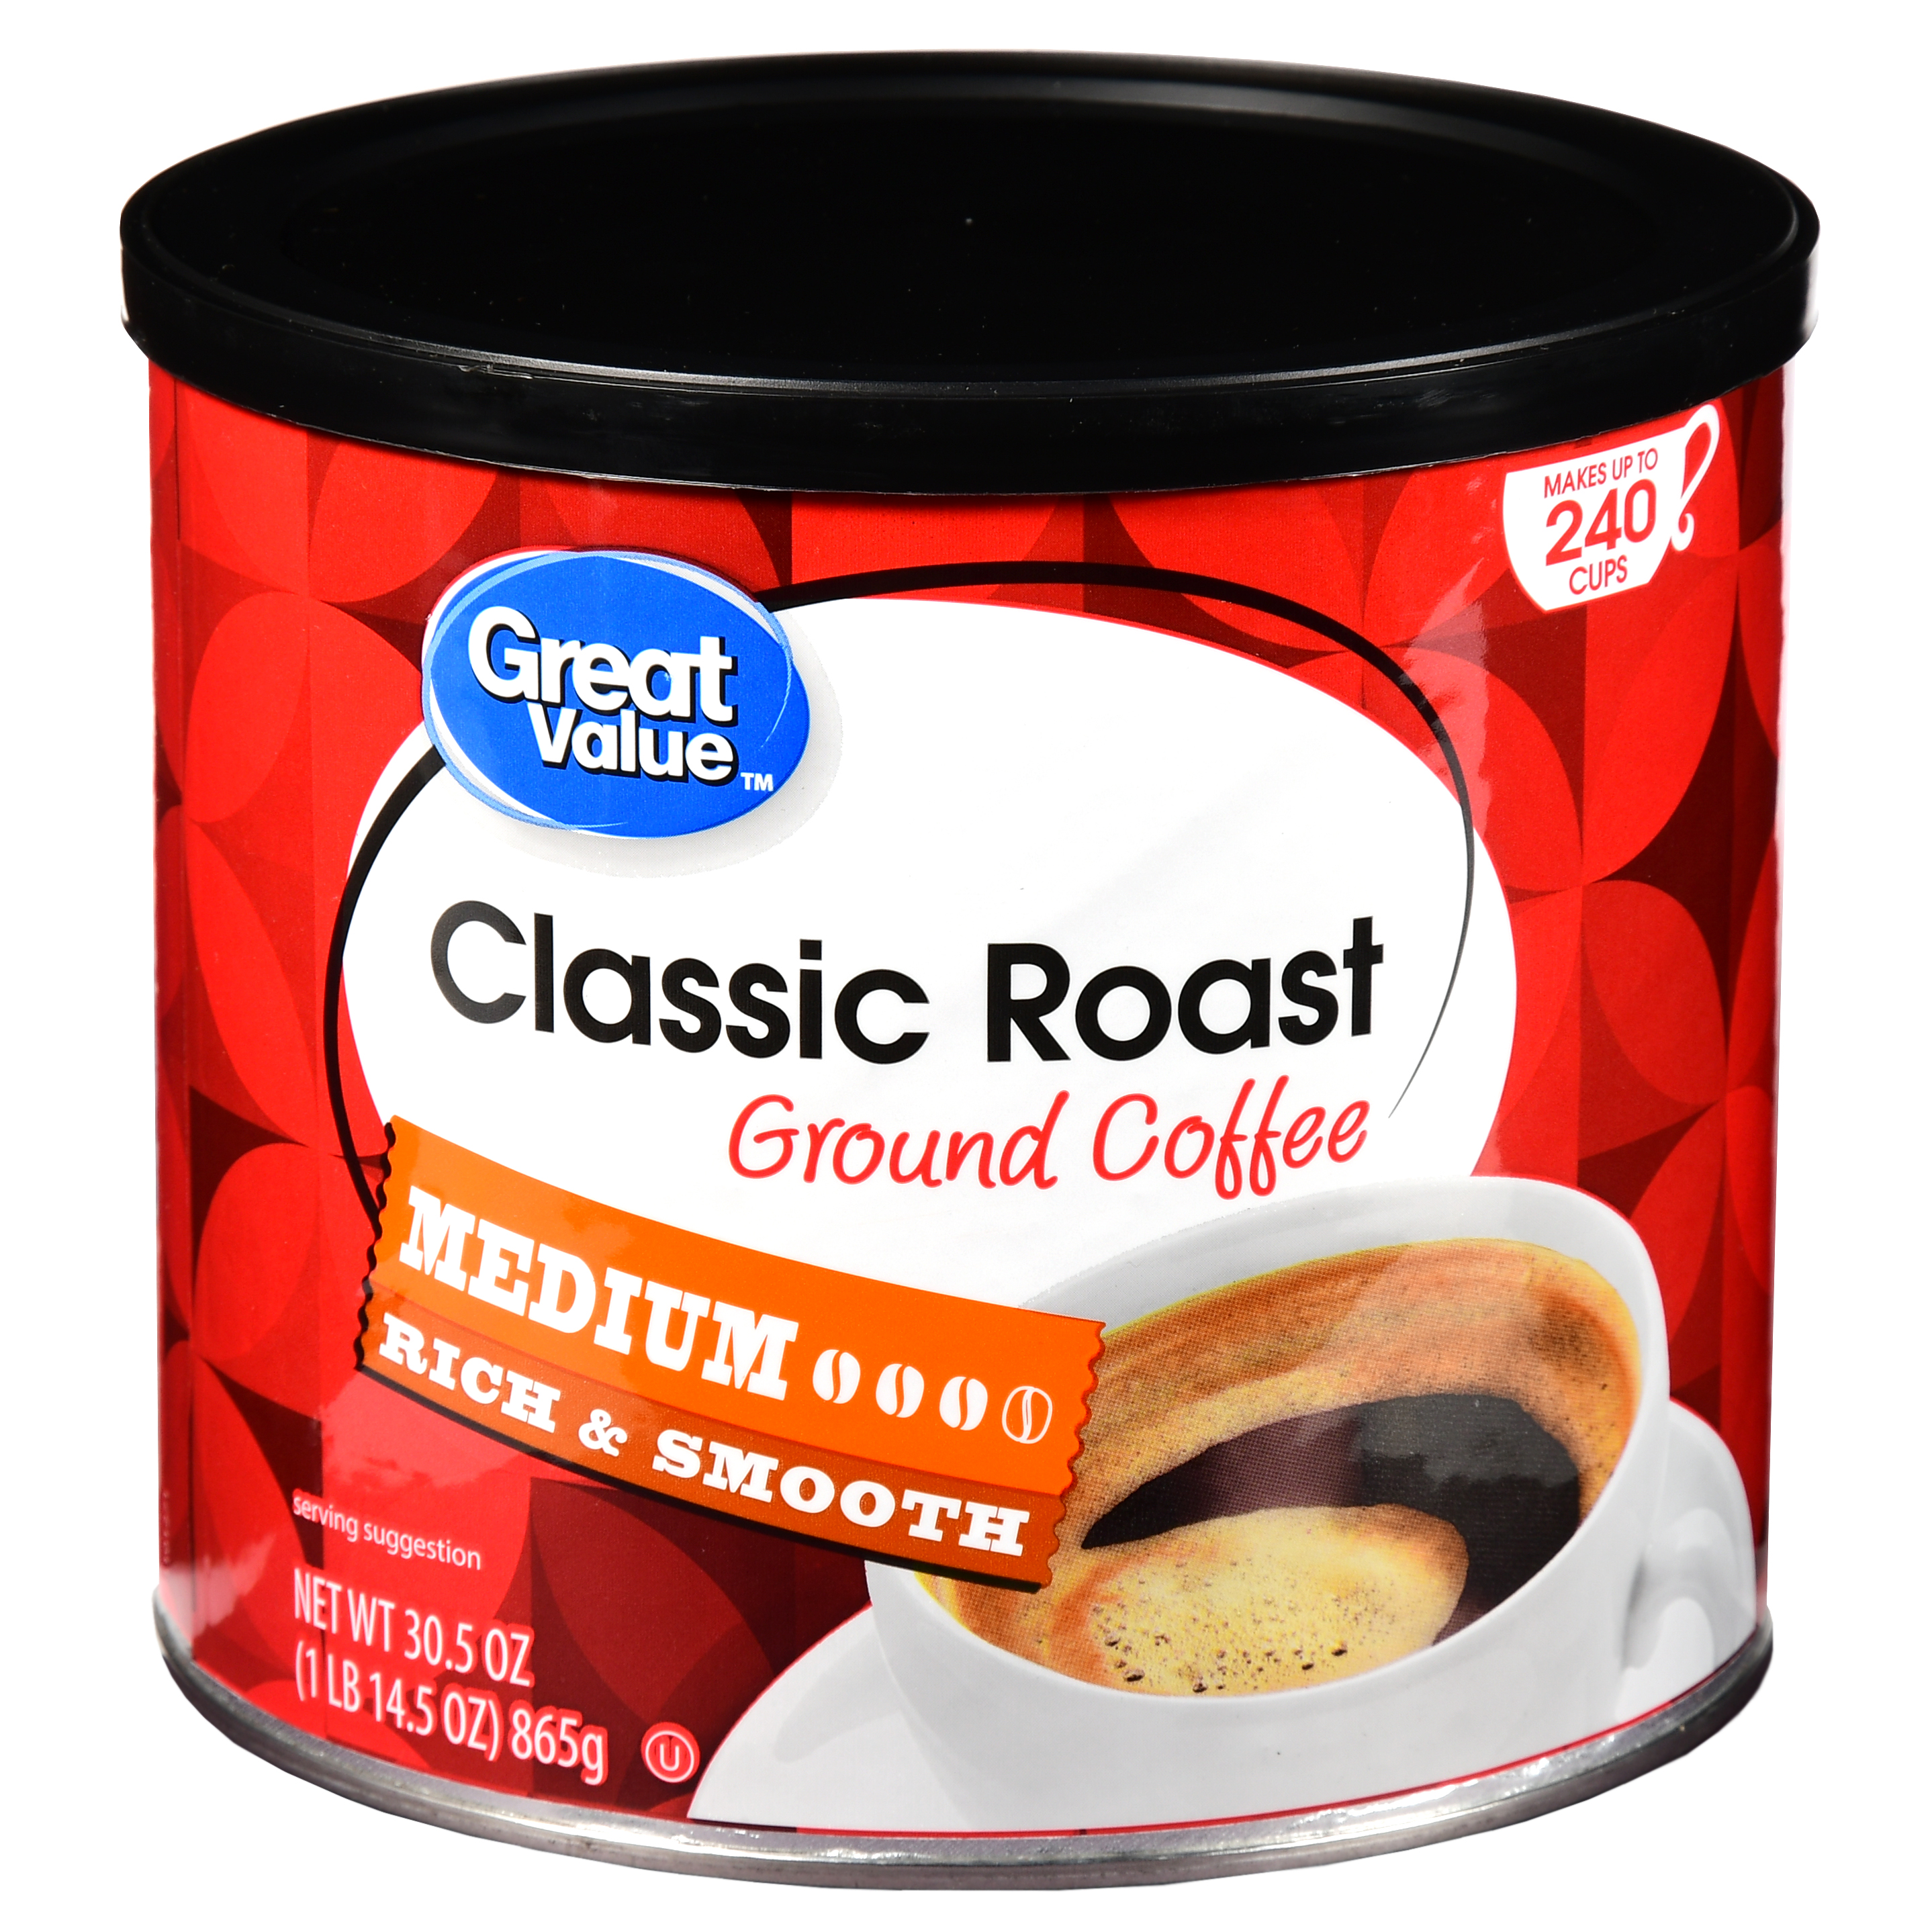 Great Value Classic Roast Ground Coffee, Medium Roasted, 30.5 oz